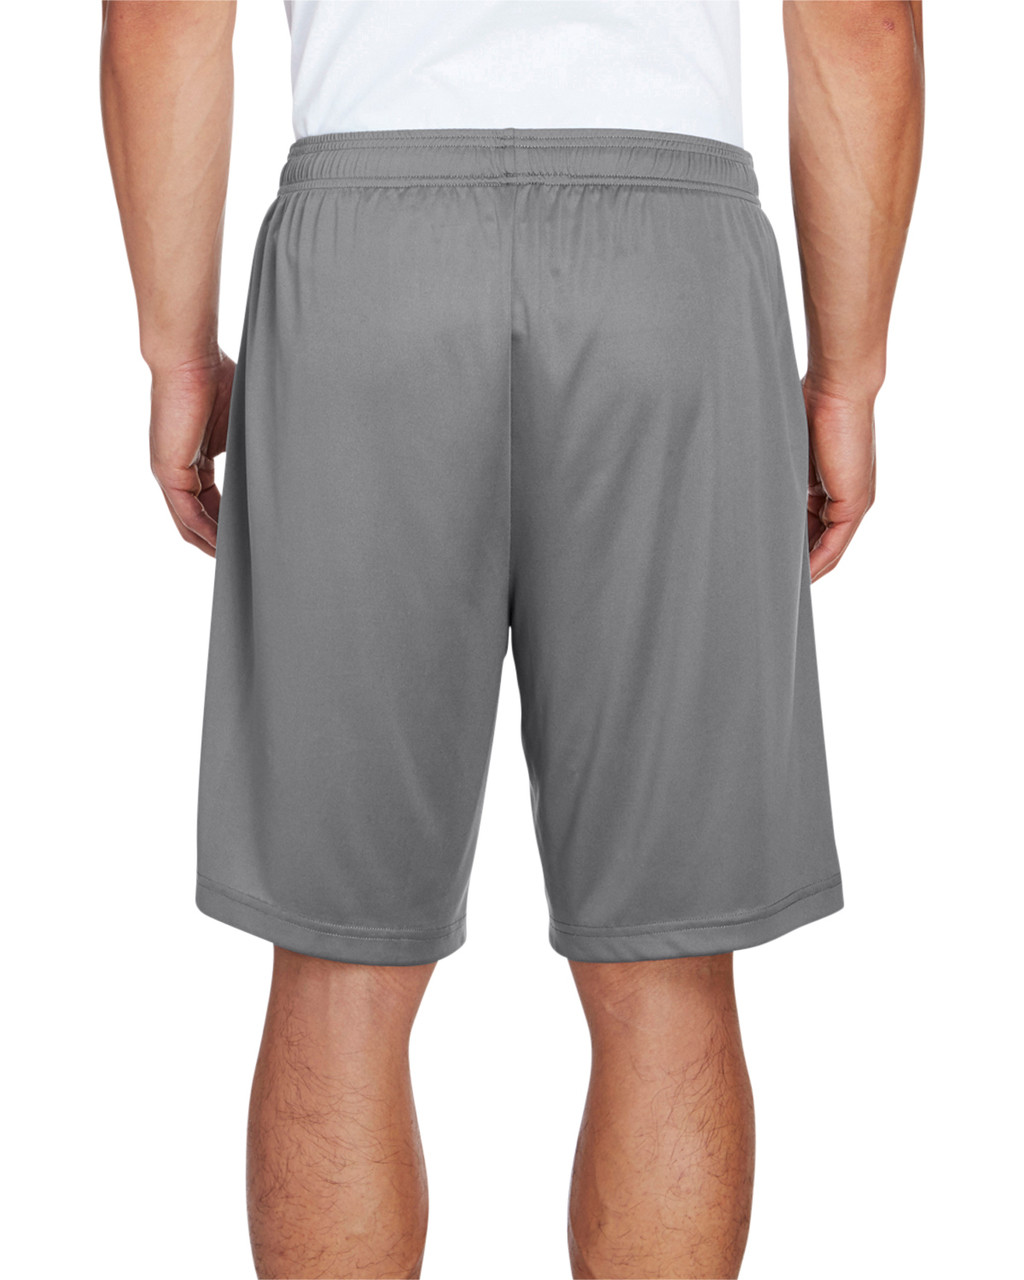 Sport Graphite - Back, TT11SH Team 365 Men's Zone Performance Short | BlankClothing.ca